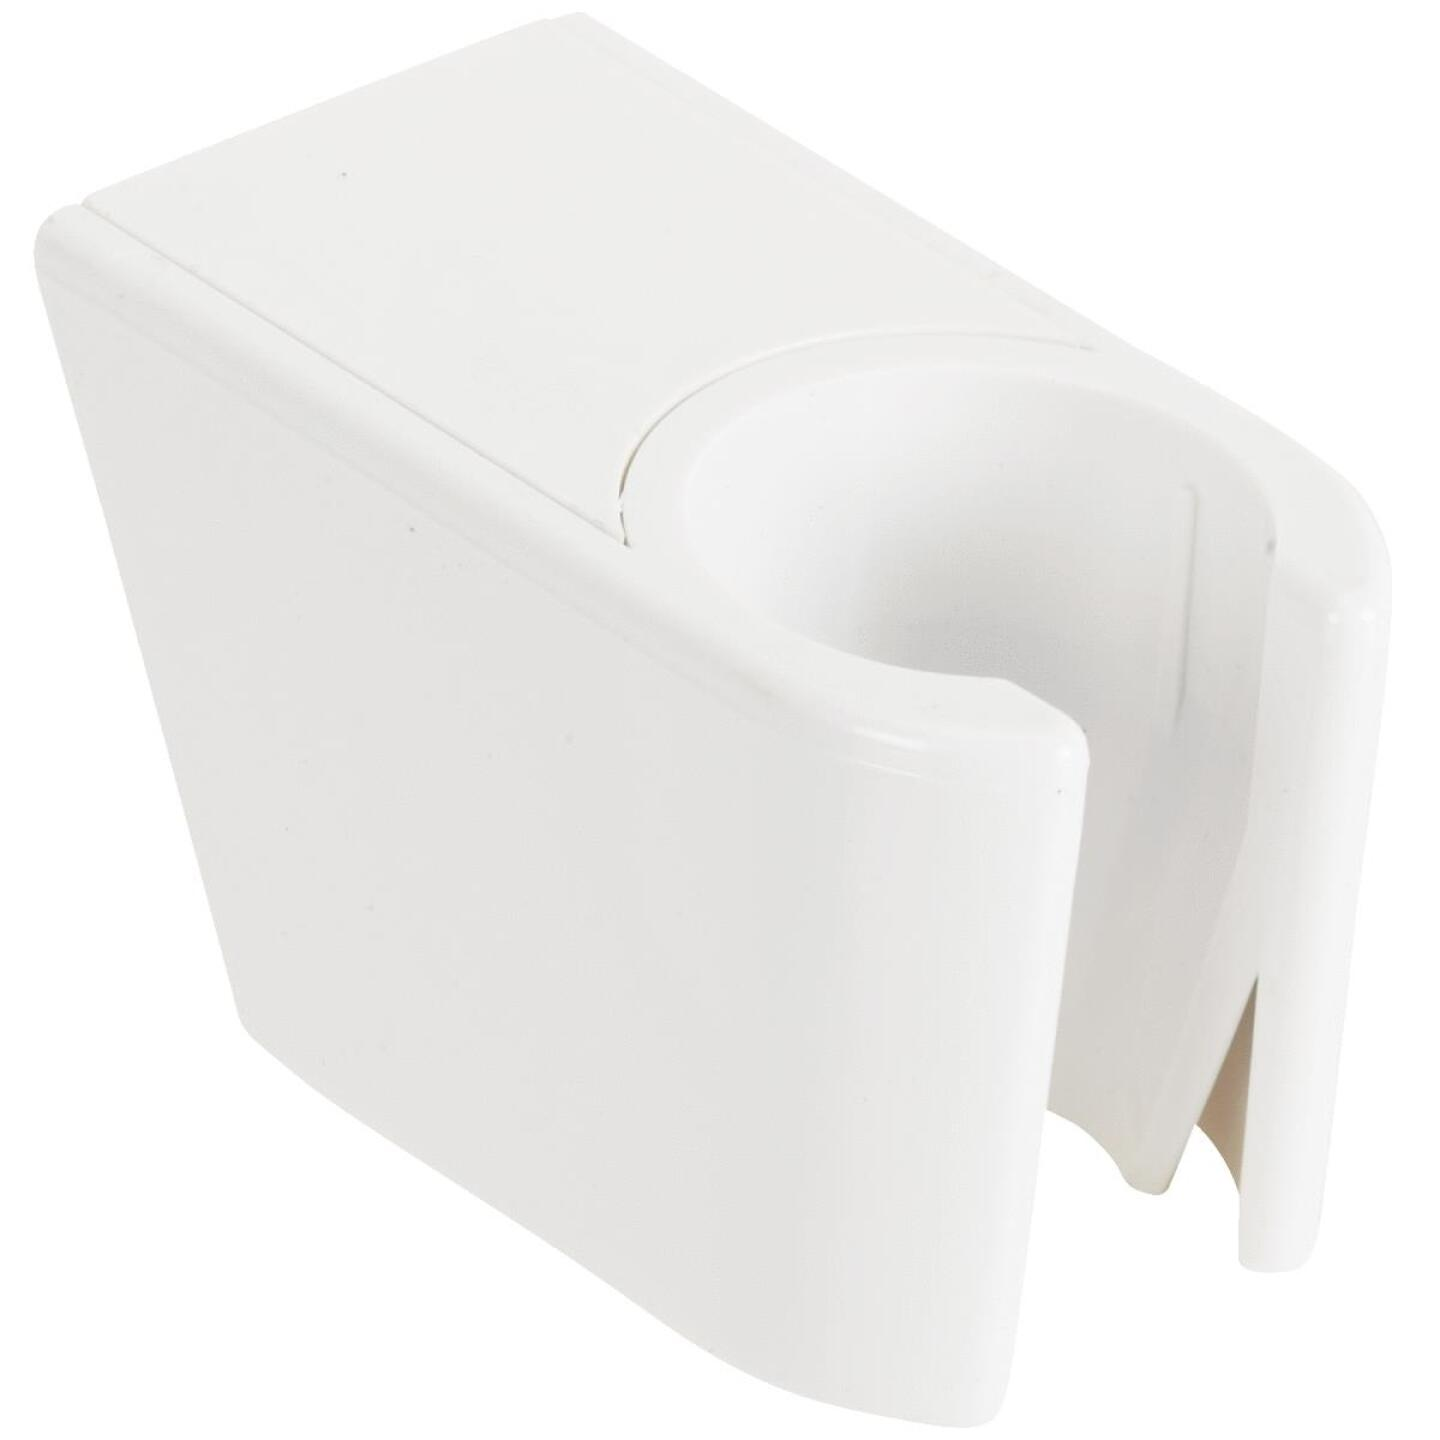 Do it White Plastic Shower Wall Mount Image 2